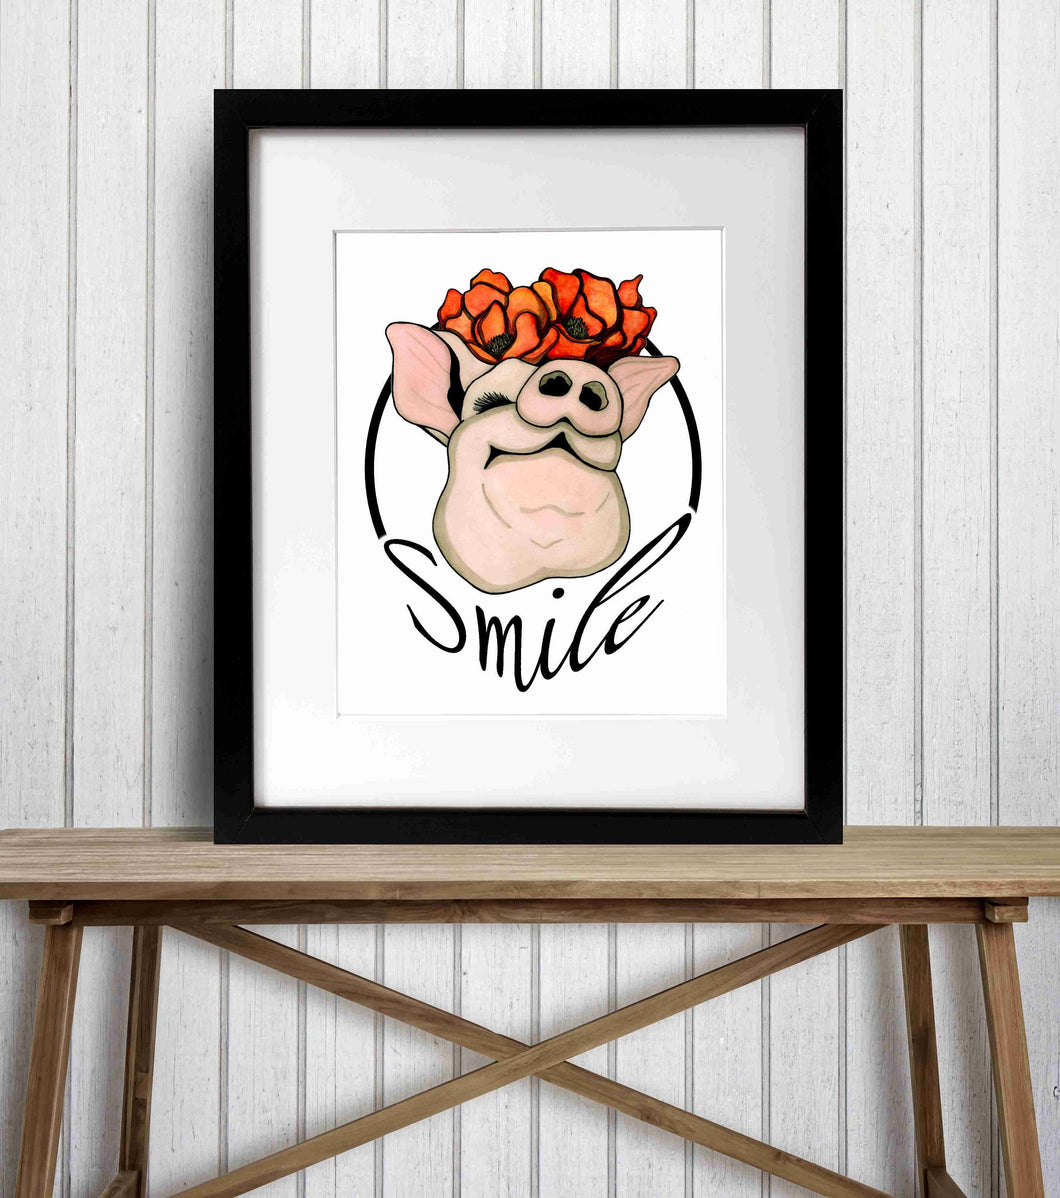 Poppy Pig - Smile Inspired Watercolor Painting - Art Print